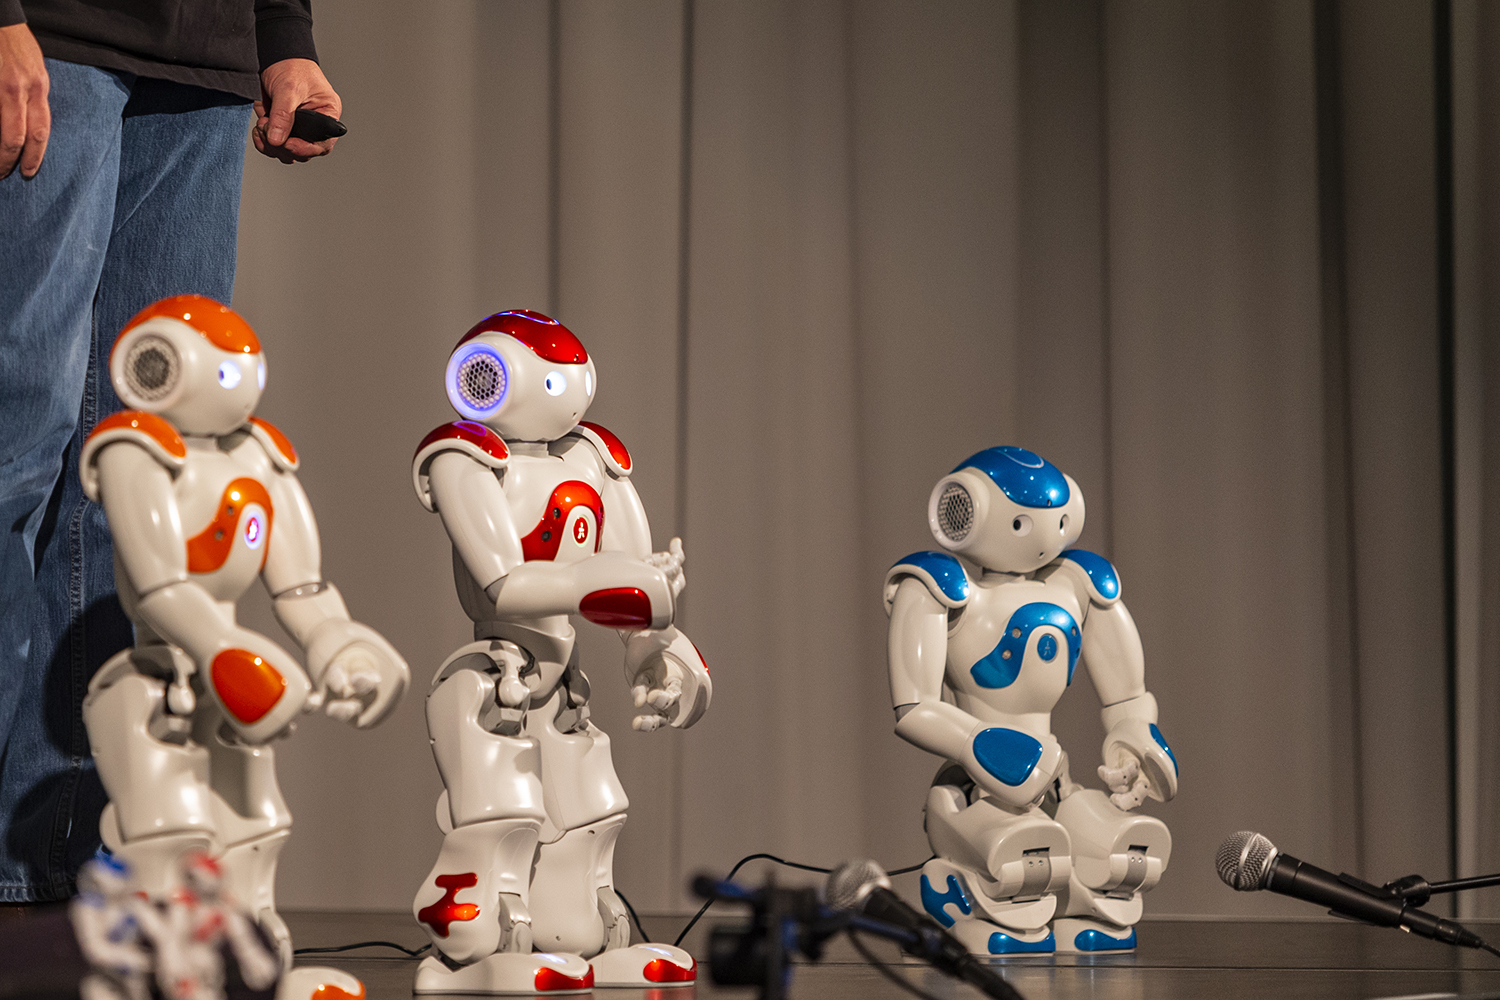 Robots performed onstage at Hancher Auditorium on Thursday. The performance was put on as part of the University of Iowa Robot Theater Project.